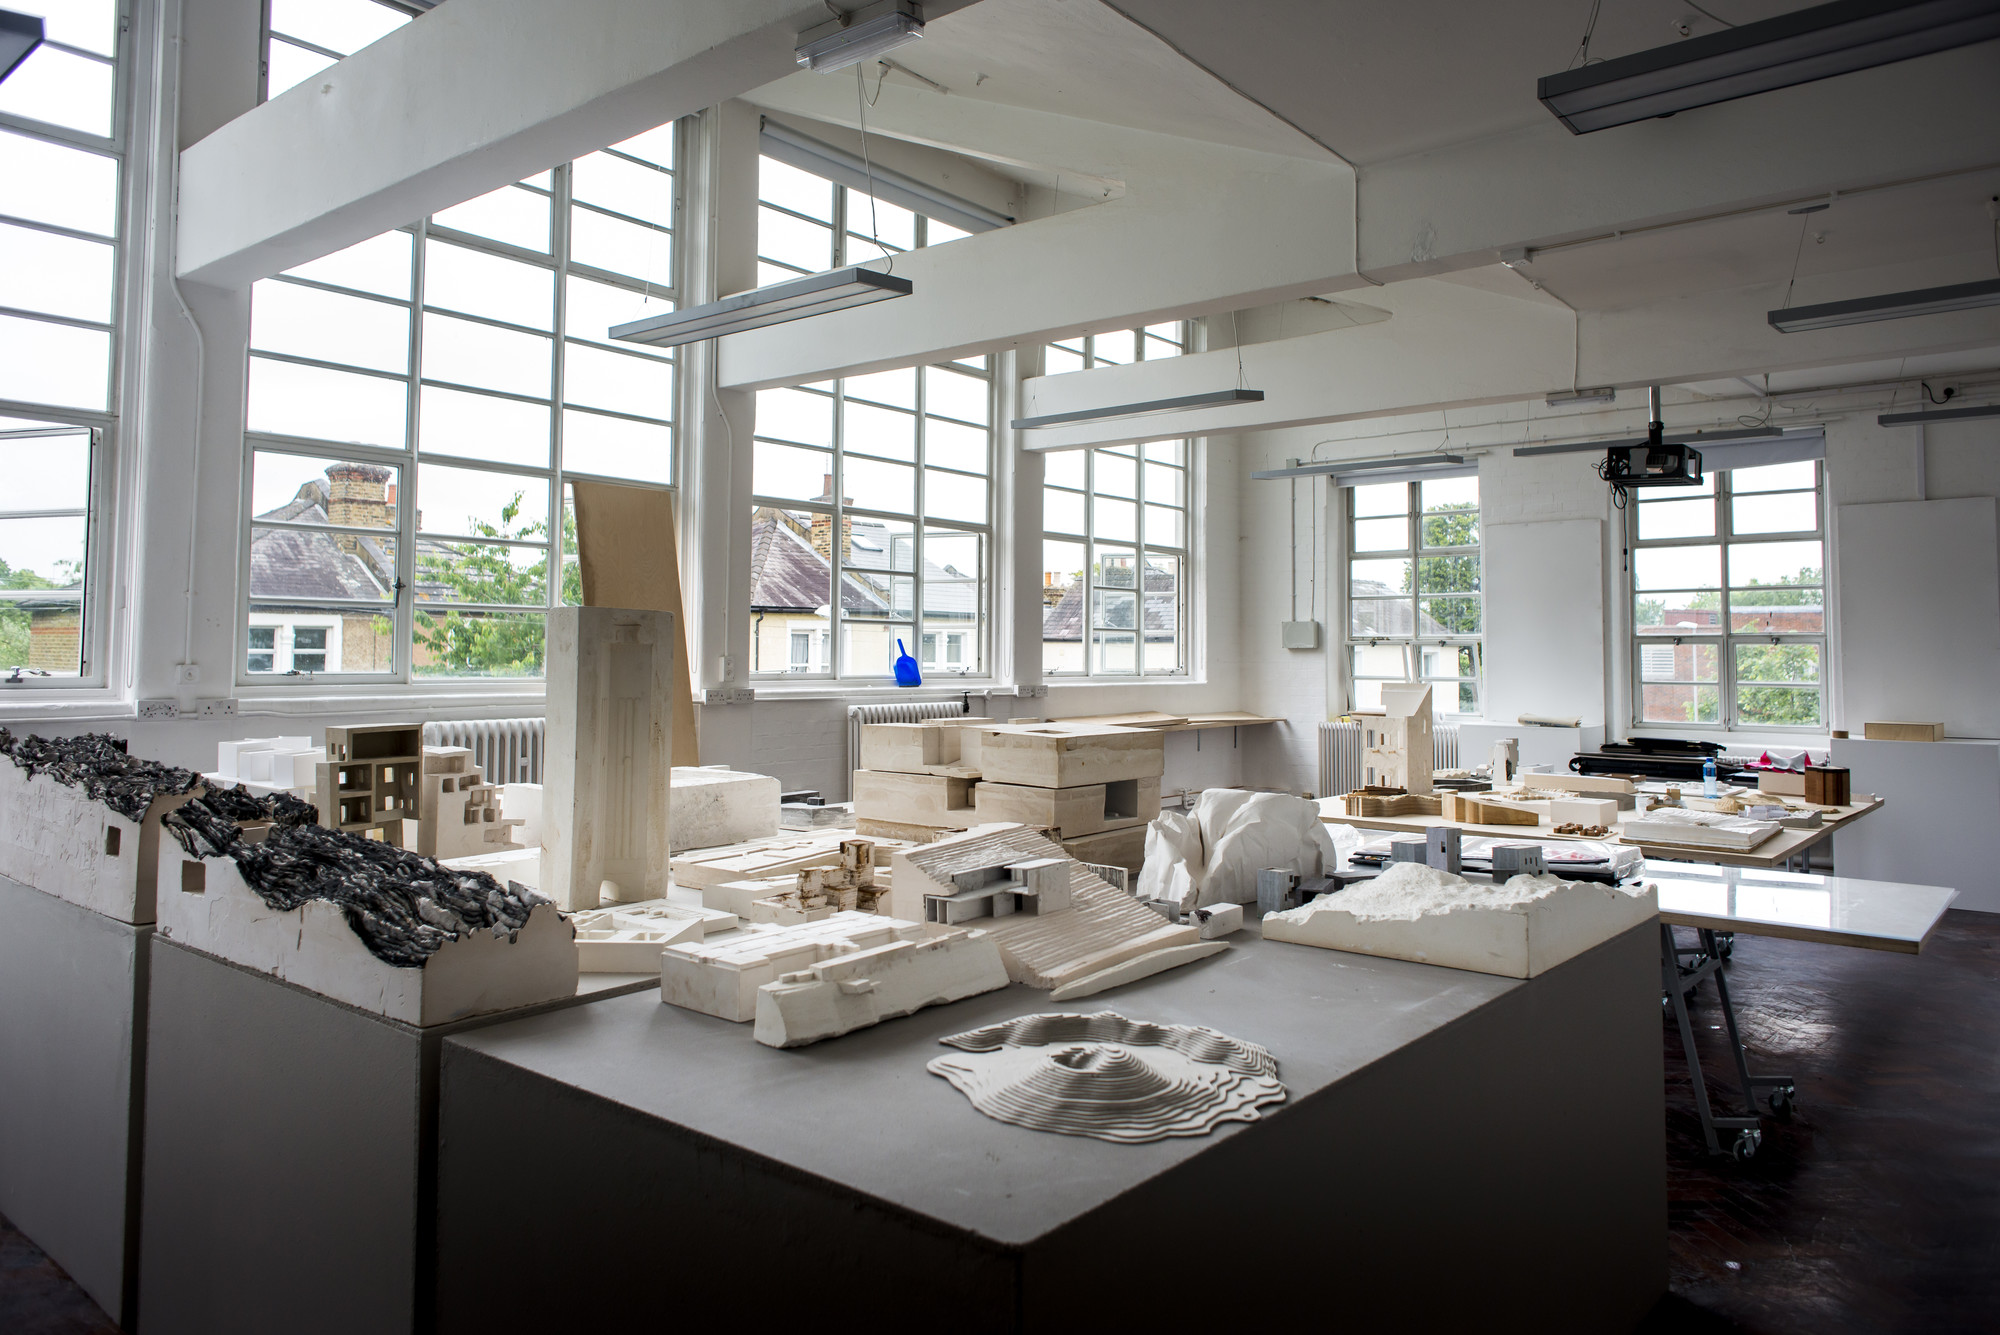 Architectural Models On Display